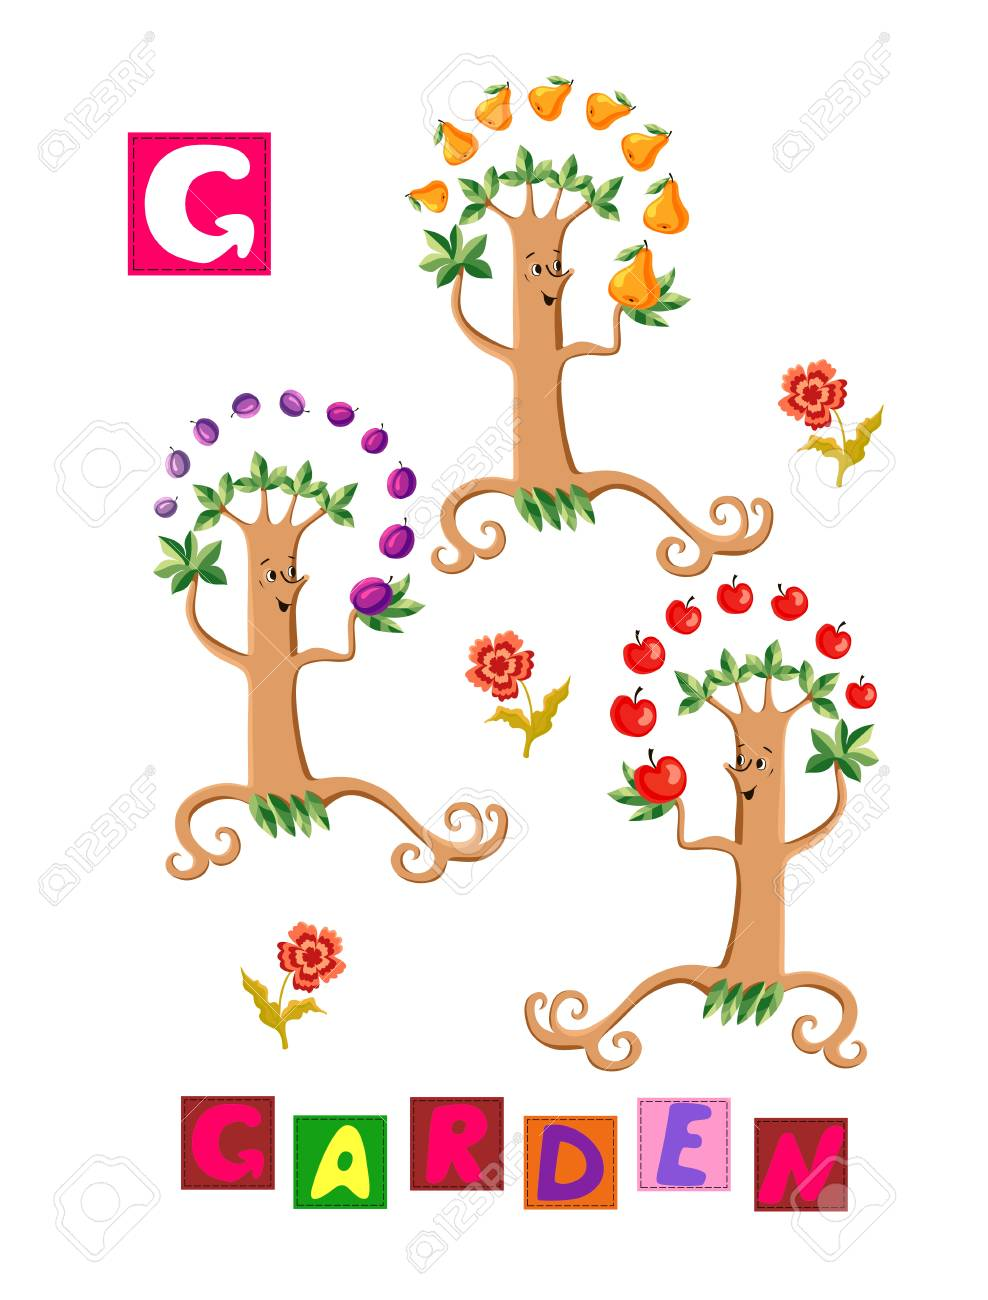 Cute Cartoon English Alphabet With Colorful Image And Word Kids Royalty Free Cliparts Vectors And Stock Illustration Image 58632452